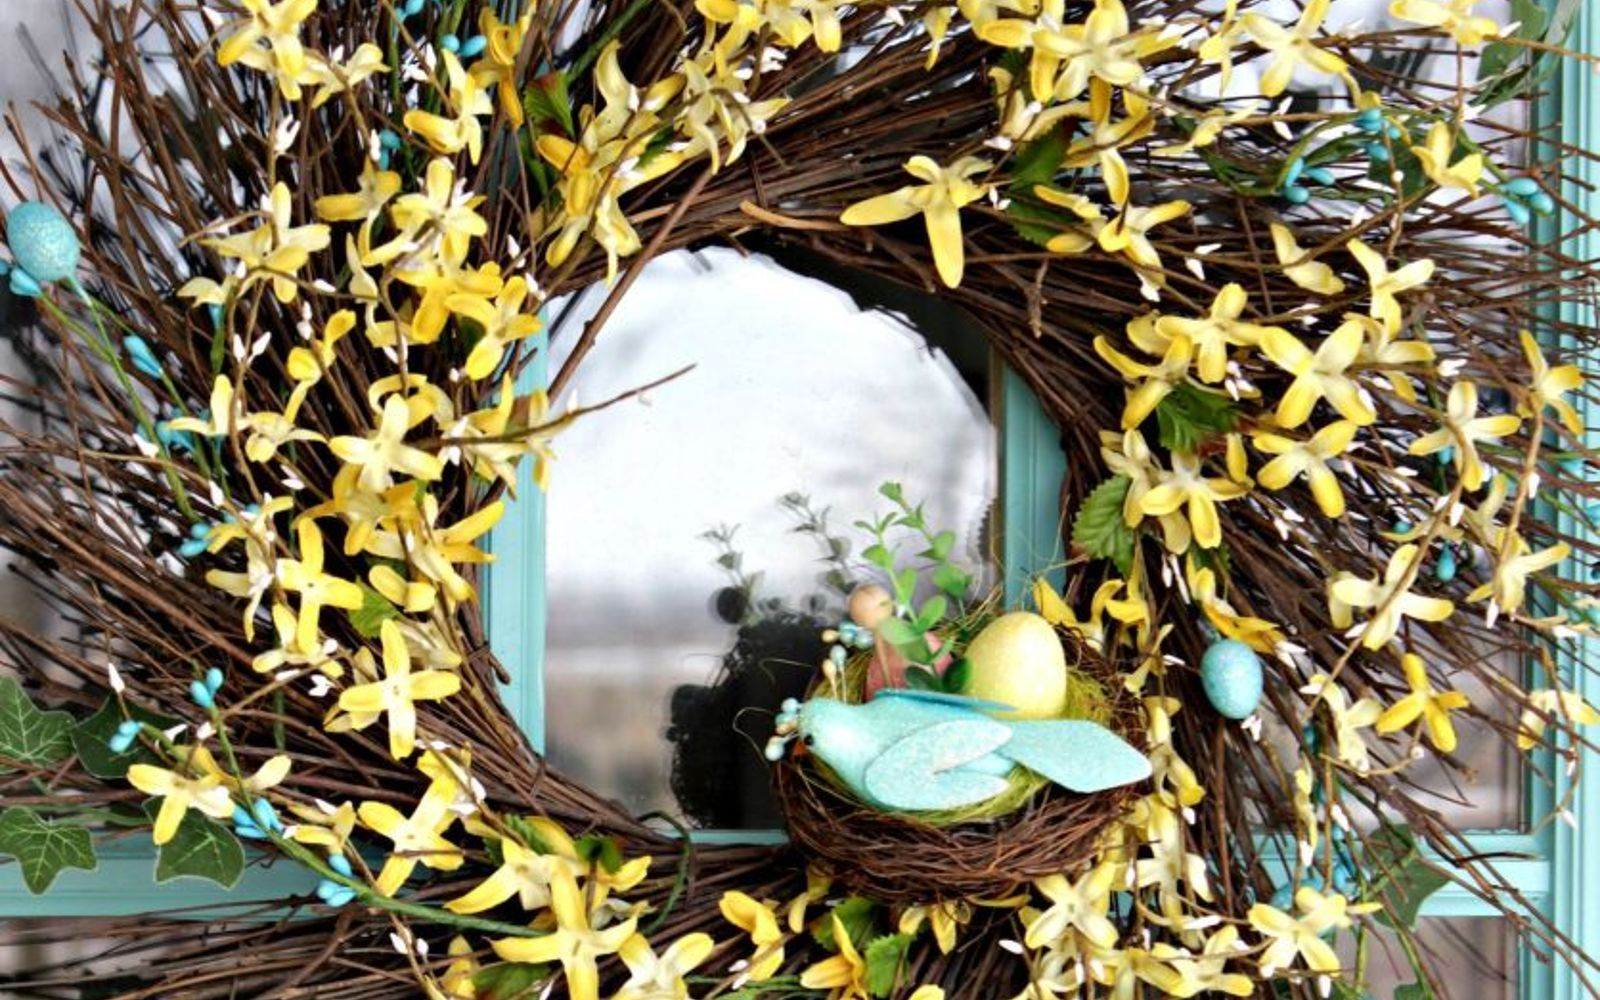 s 31 gorgeous spring wreaths that will make your neighbors smile, crafts, seasonal holiday decor, wreaths, Weave a fun floral wreath